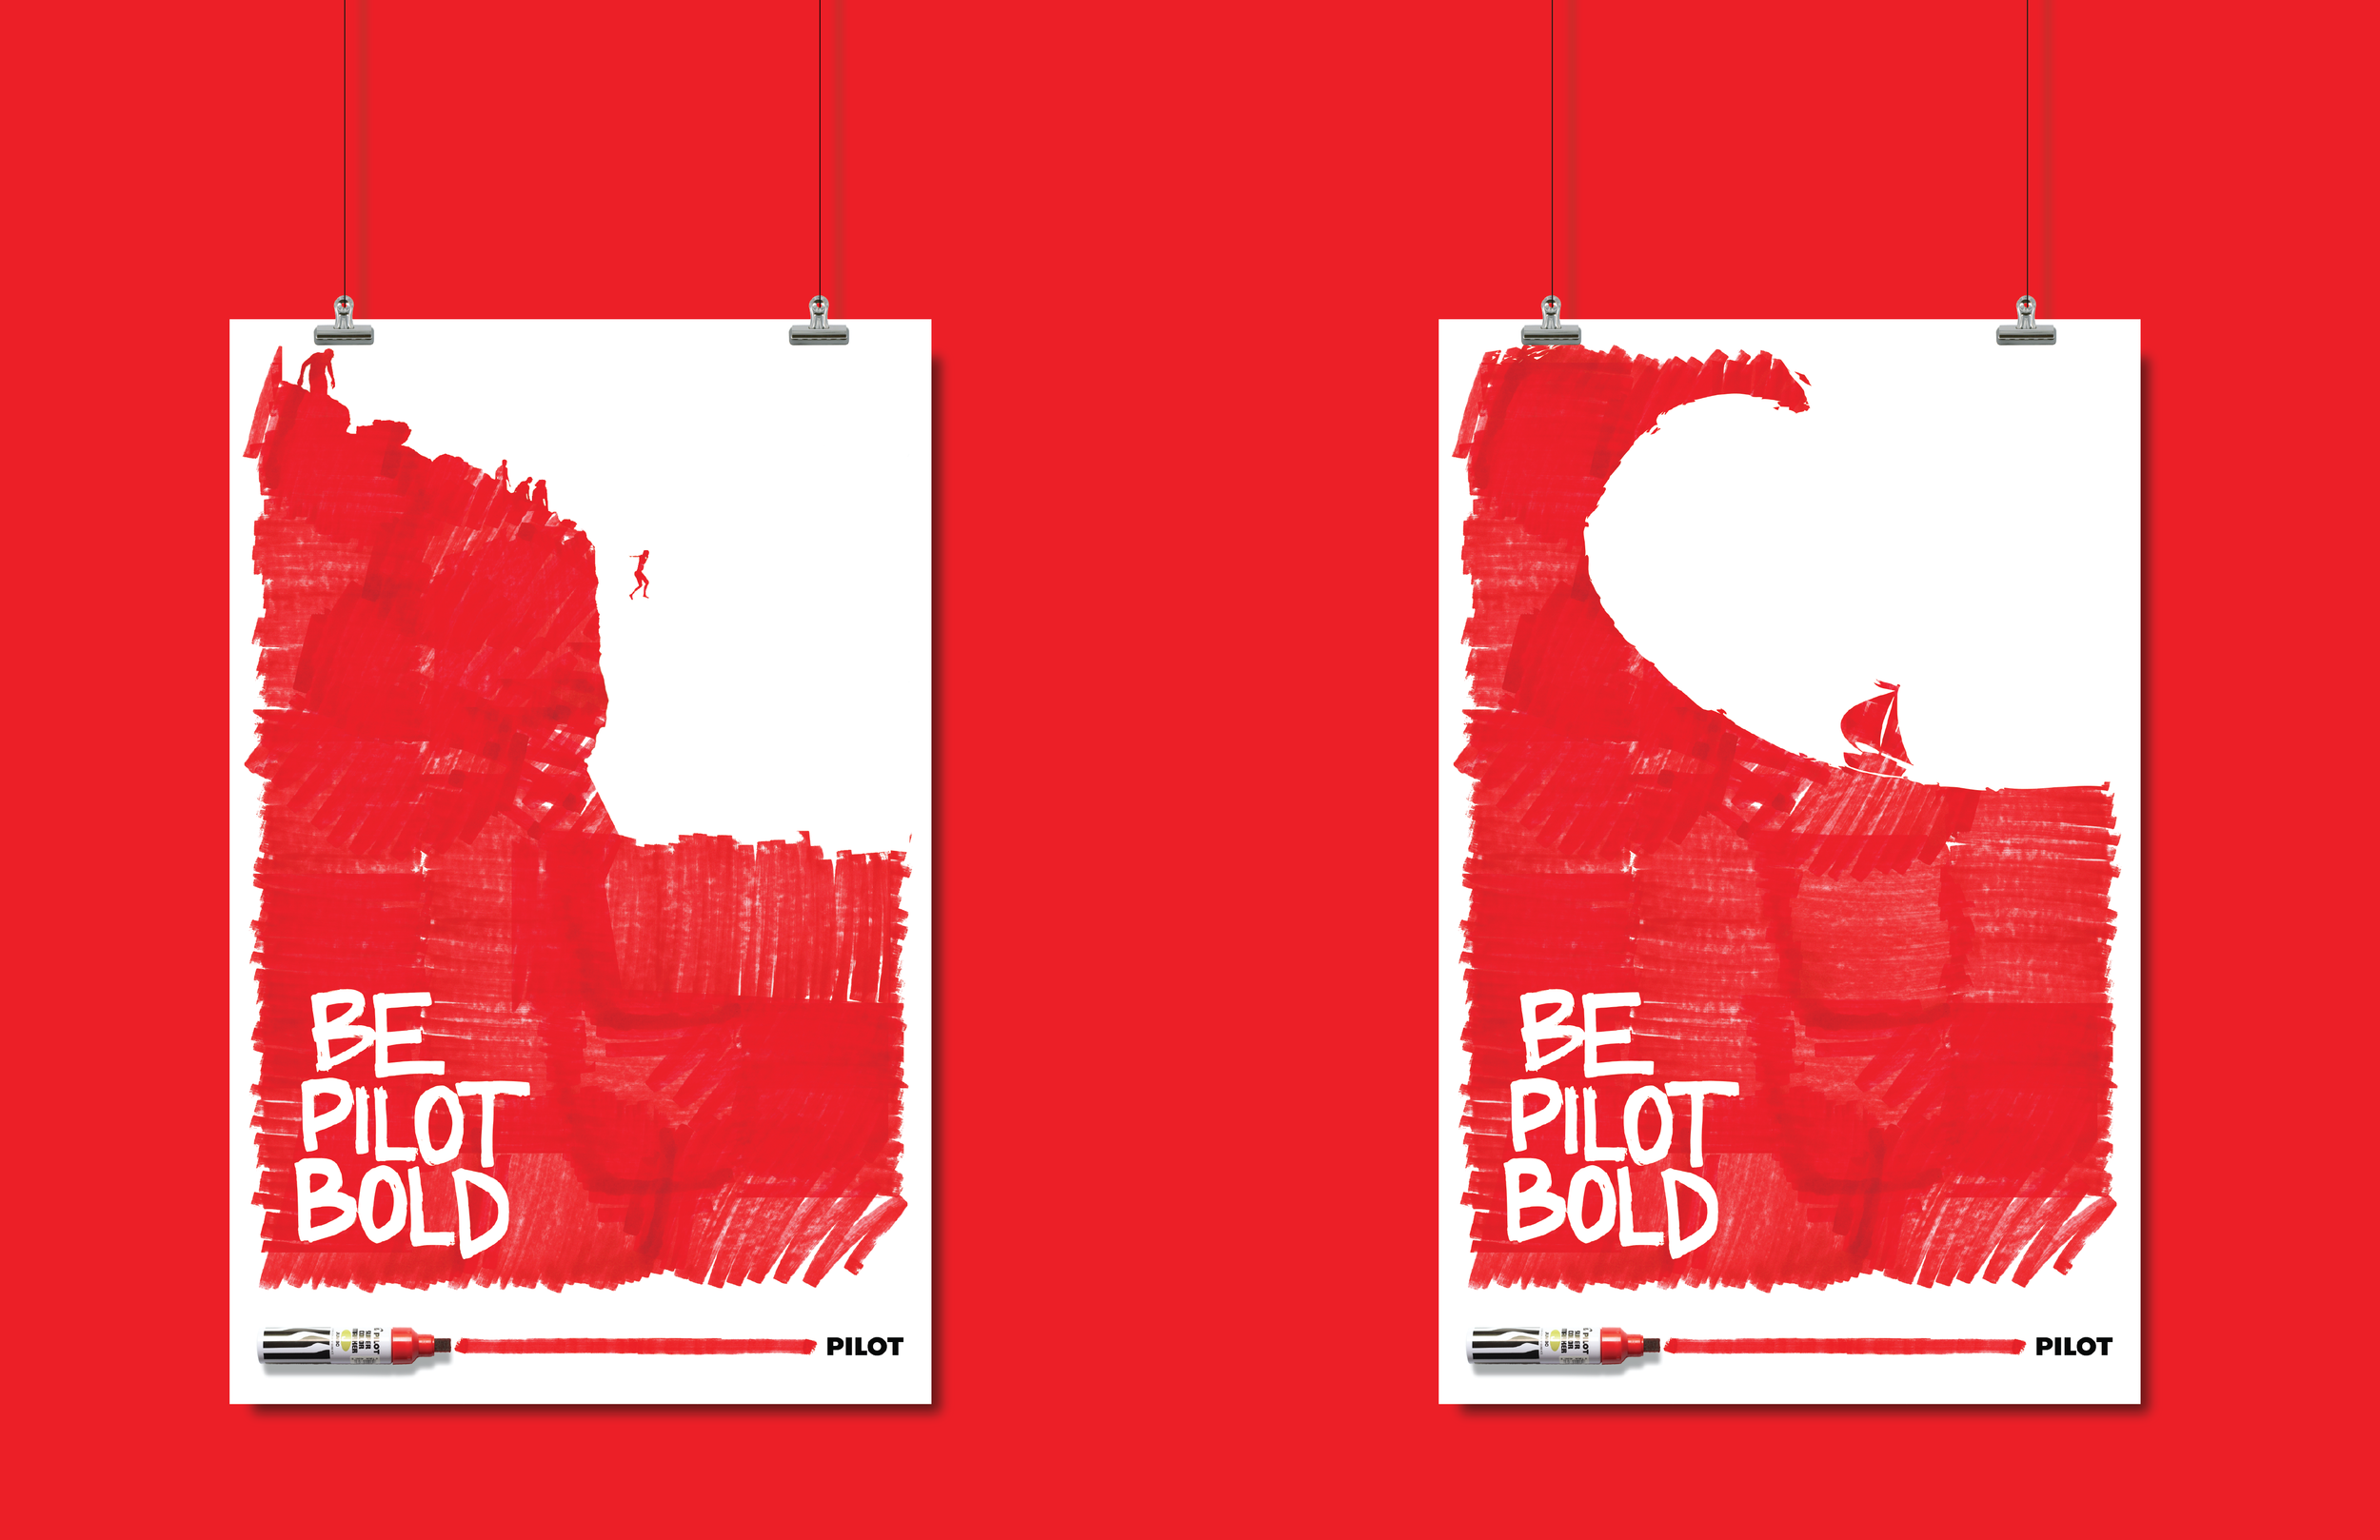 posters-red-01.png